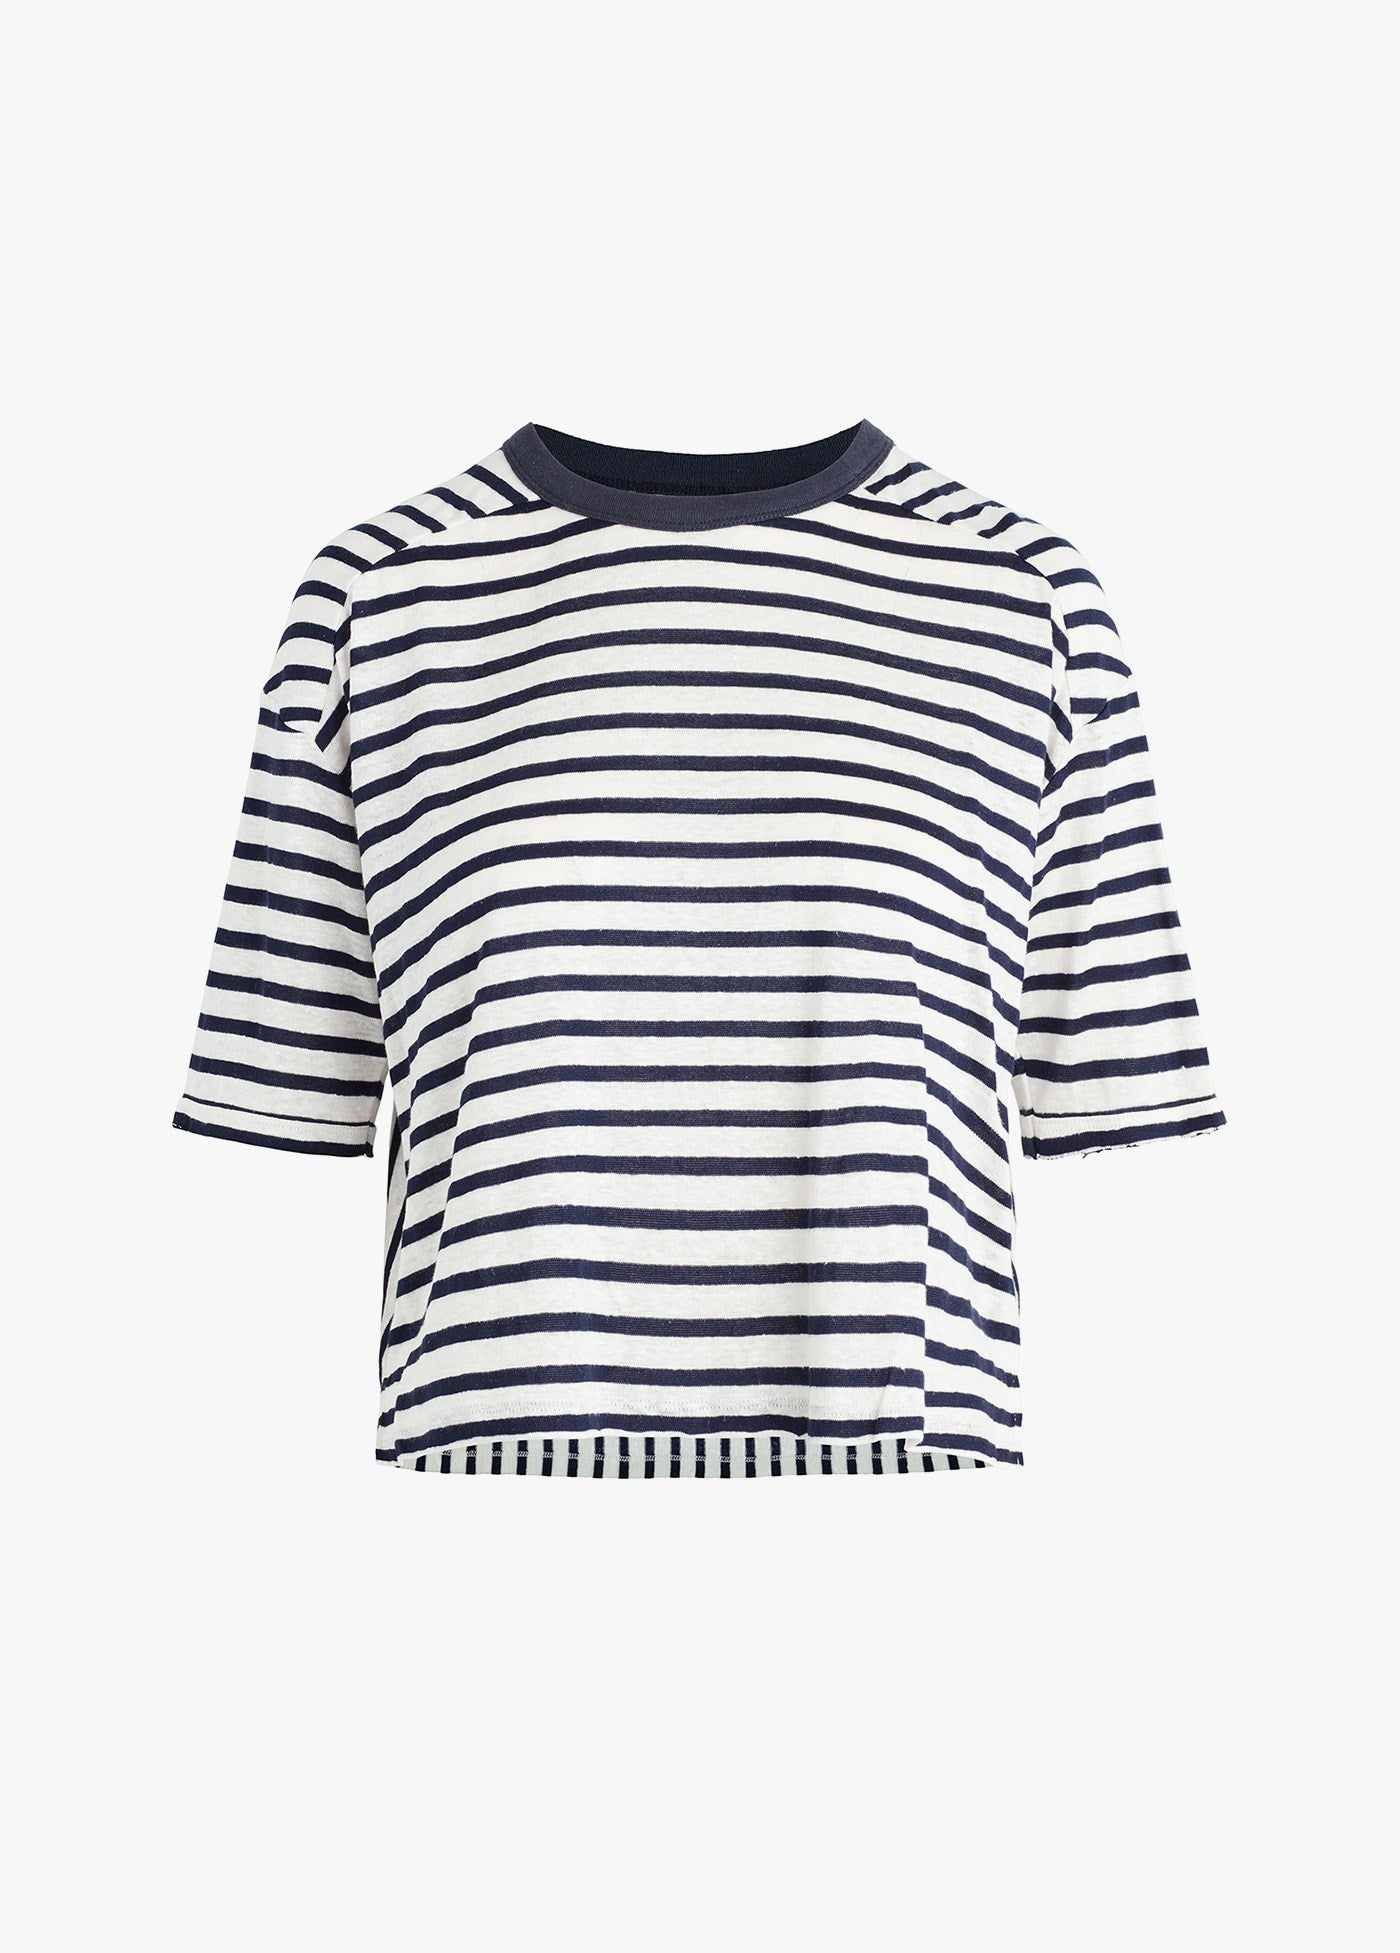 NAVY / WHITE STRIP